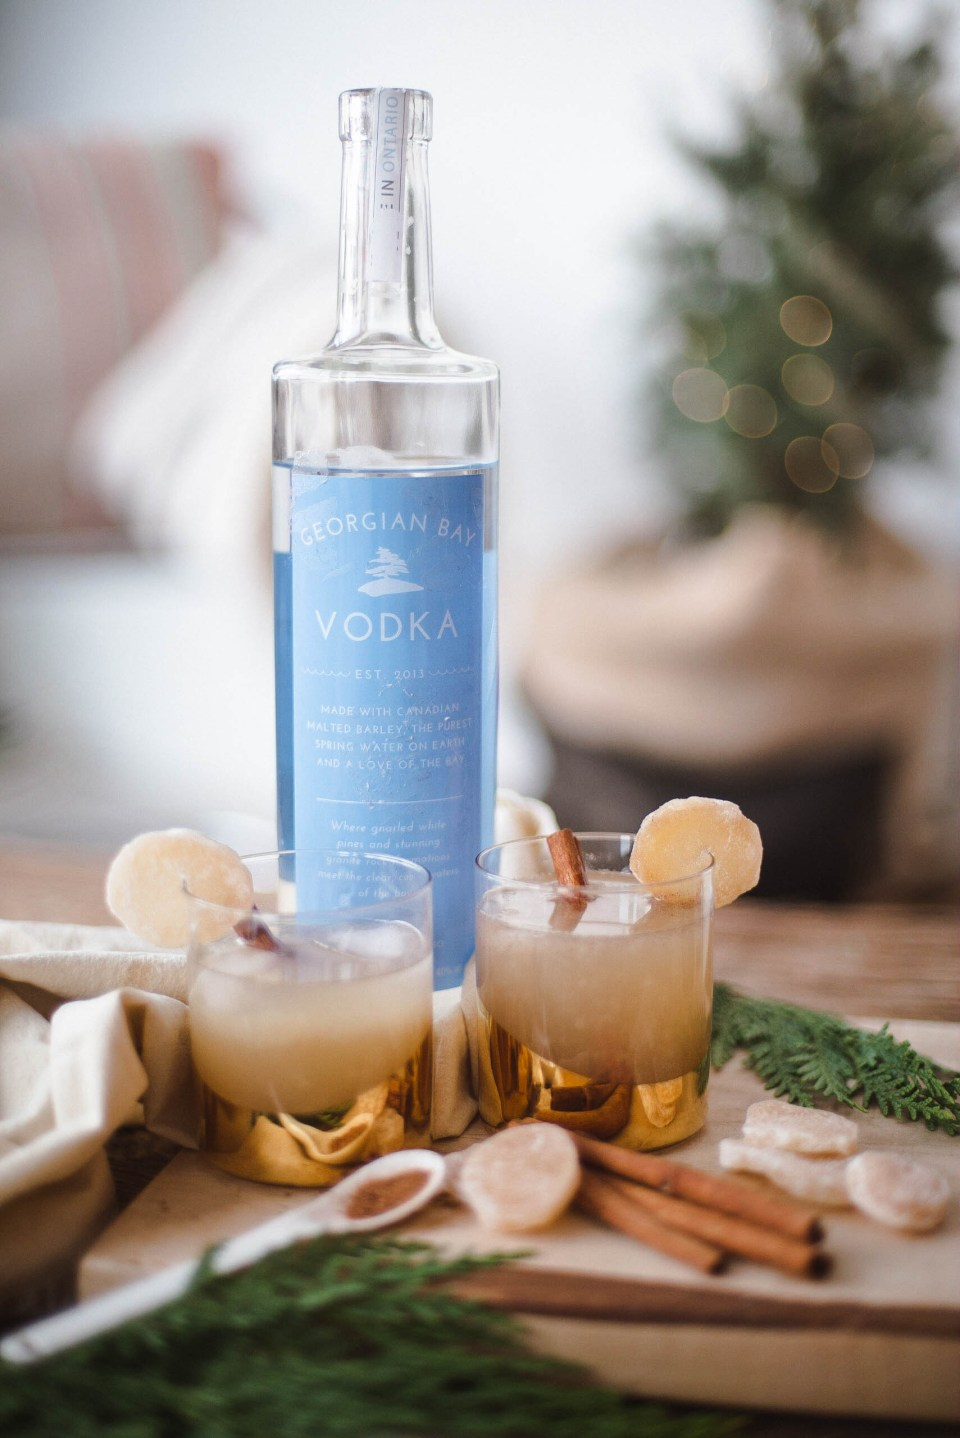 Christmas Cocktails with Vodka - Pear & Ginger Twist!